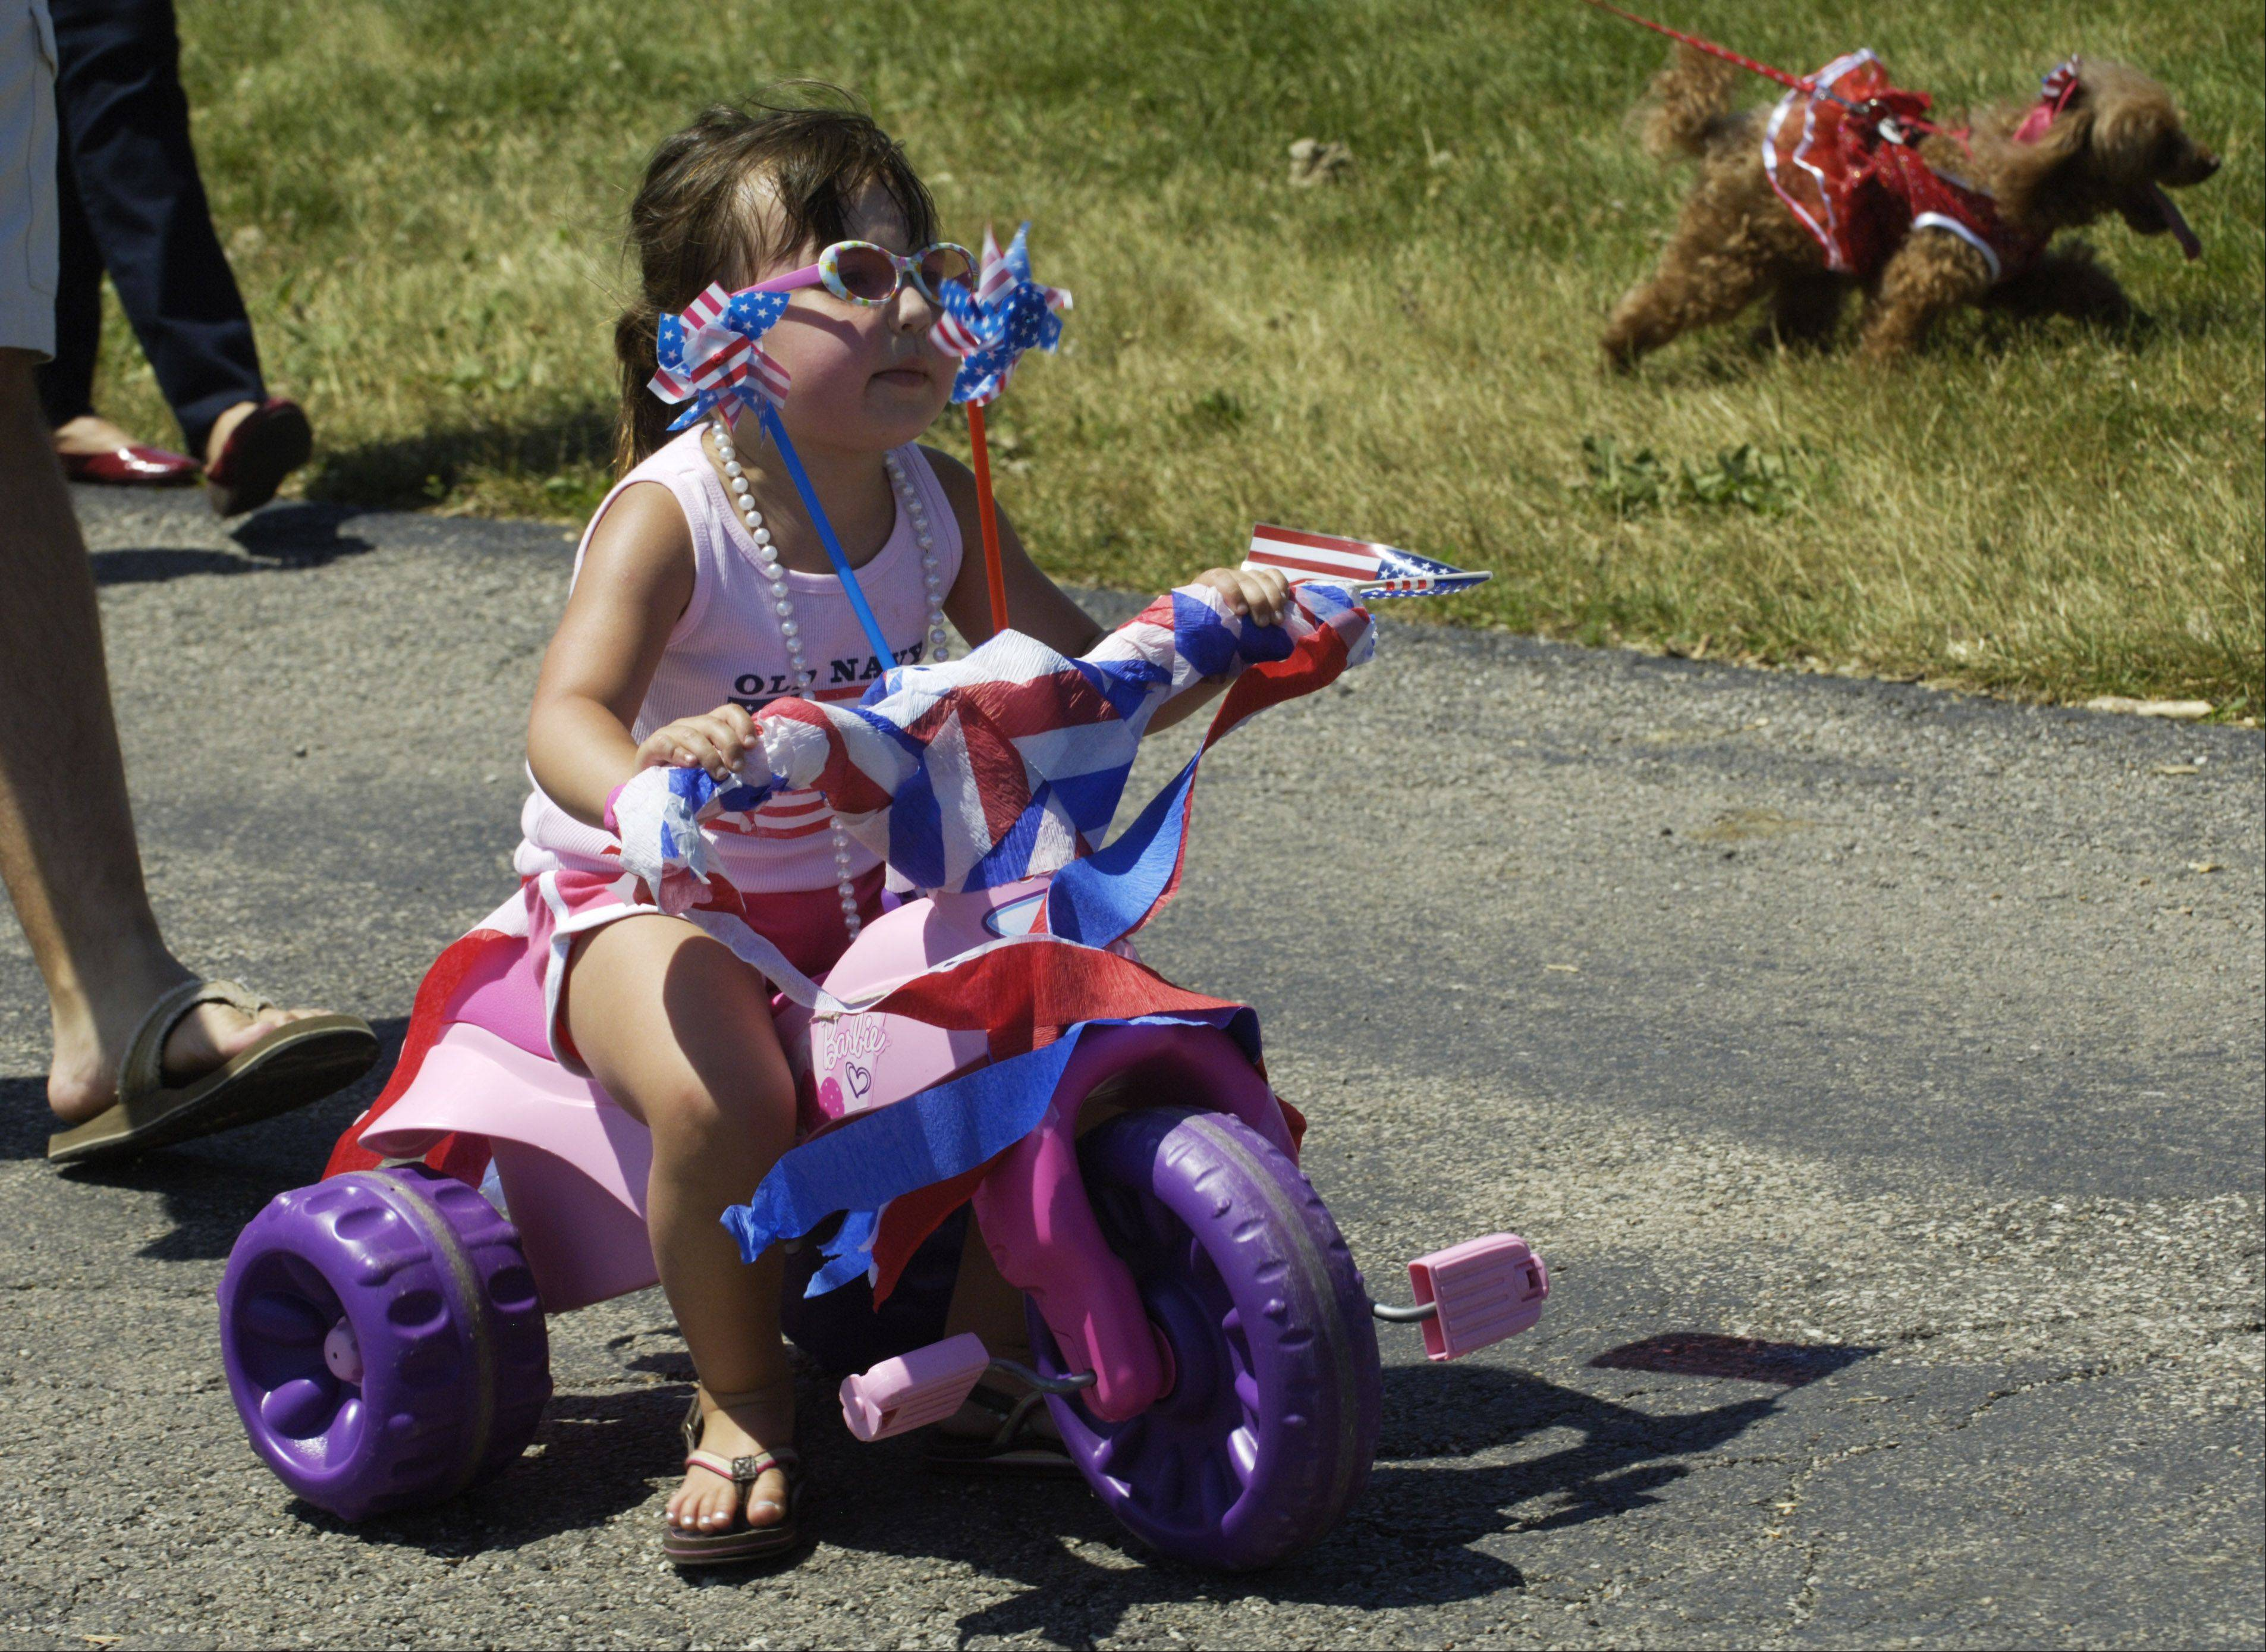 Taylor Meyer, 3, of Wheeling rides her three-wheeler in the Sis Boom Bike and Pet Parade during the Wheeling Park District 50th anniversary/Independence Day Celebration.